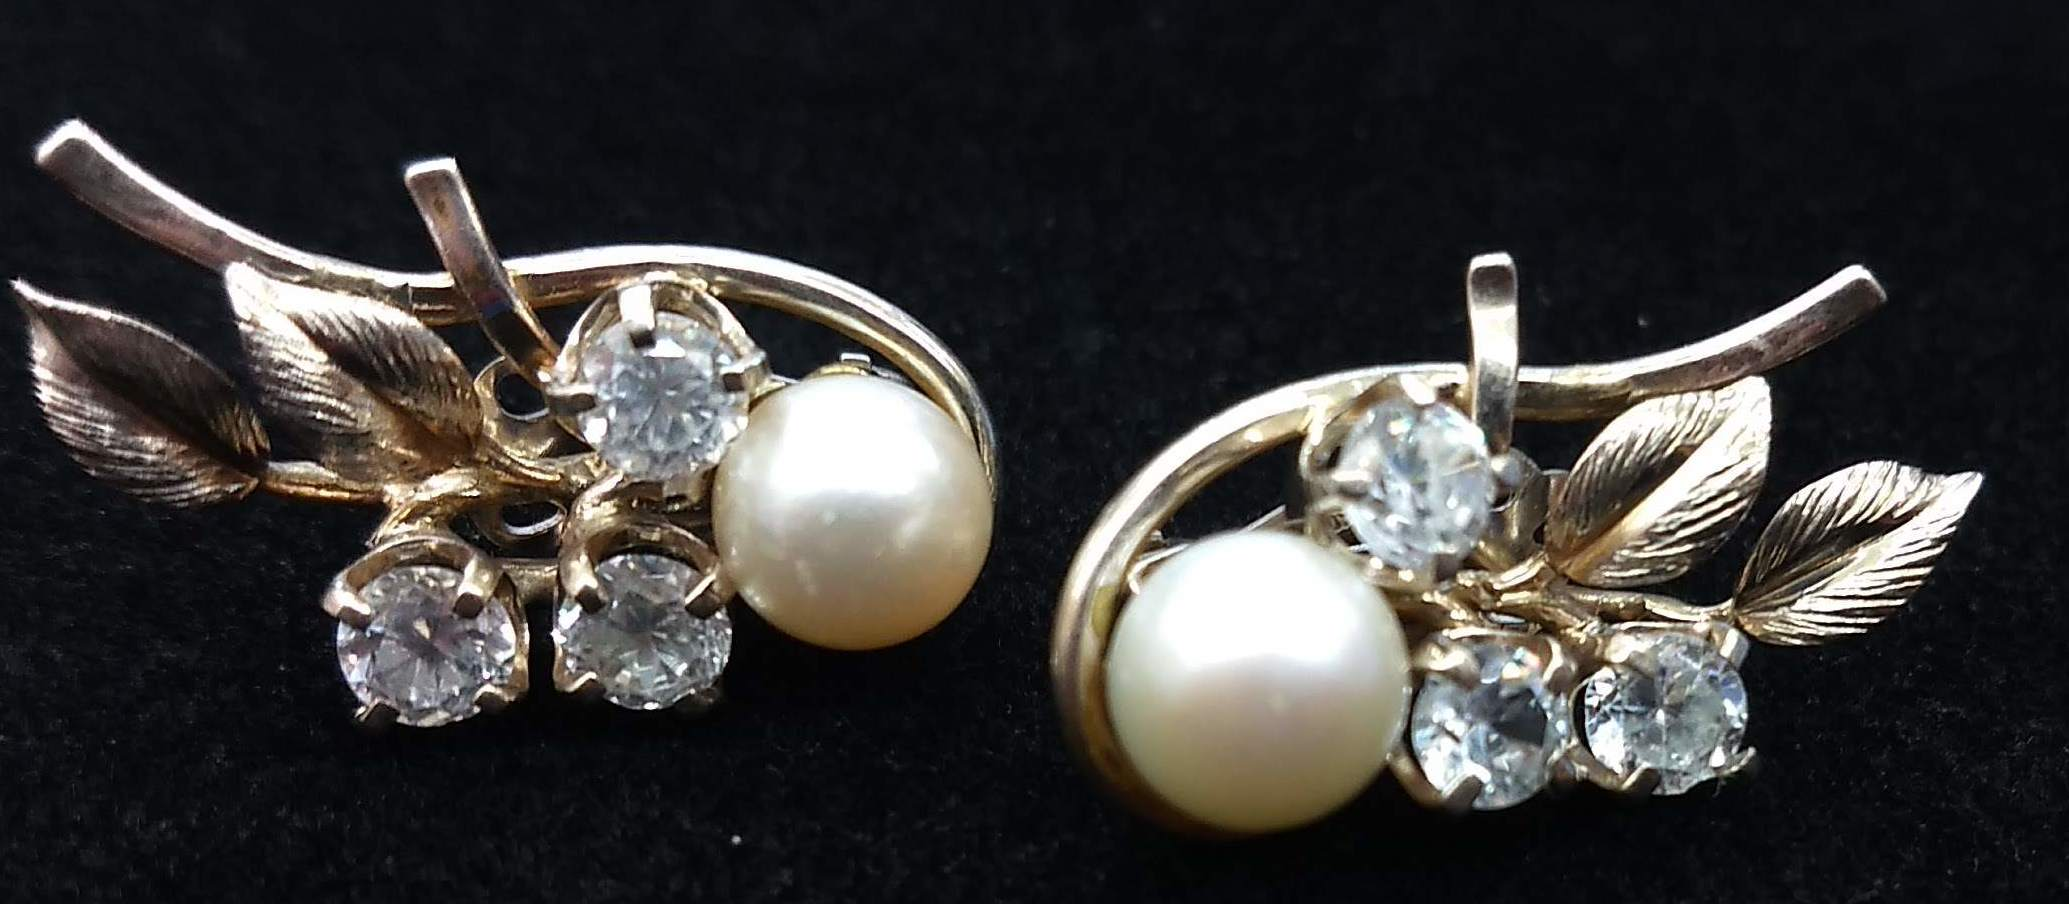 Vintage Ming's Hawaii 9 mm Pearl and Cubic Zirconia 14K White Gold EarringsVintage Ming's Hawaii 9 mm Pearl and Cubic Zirconia 14K White Gold Earrings